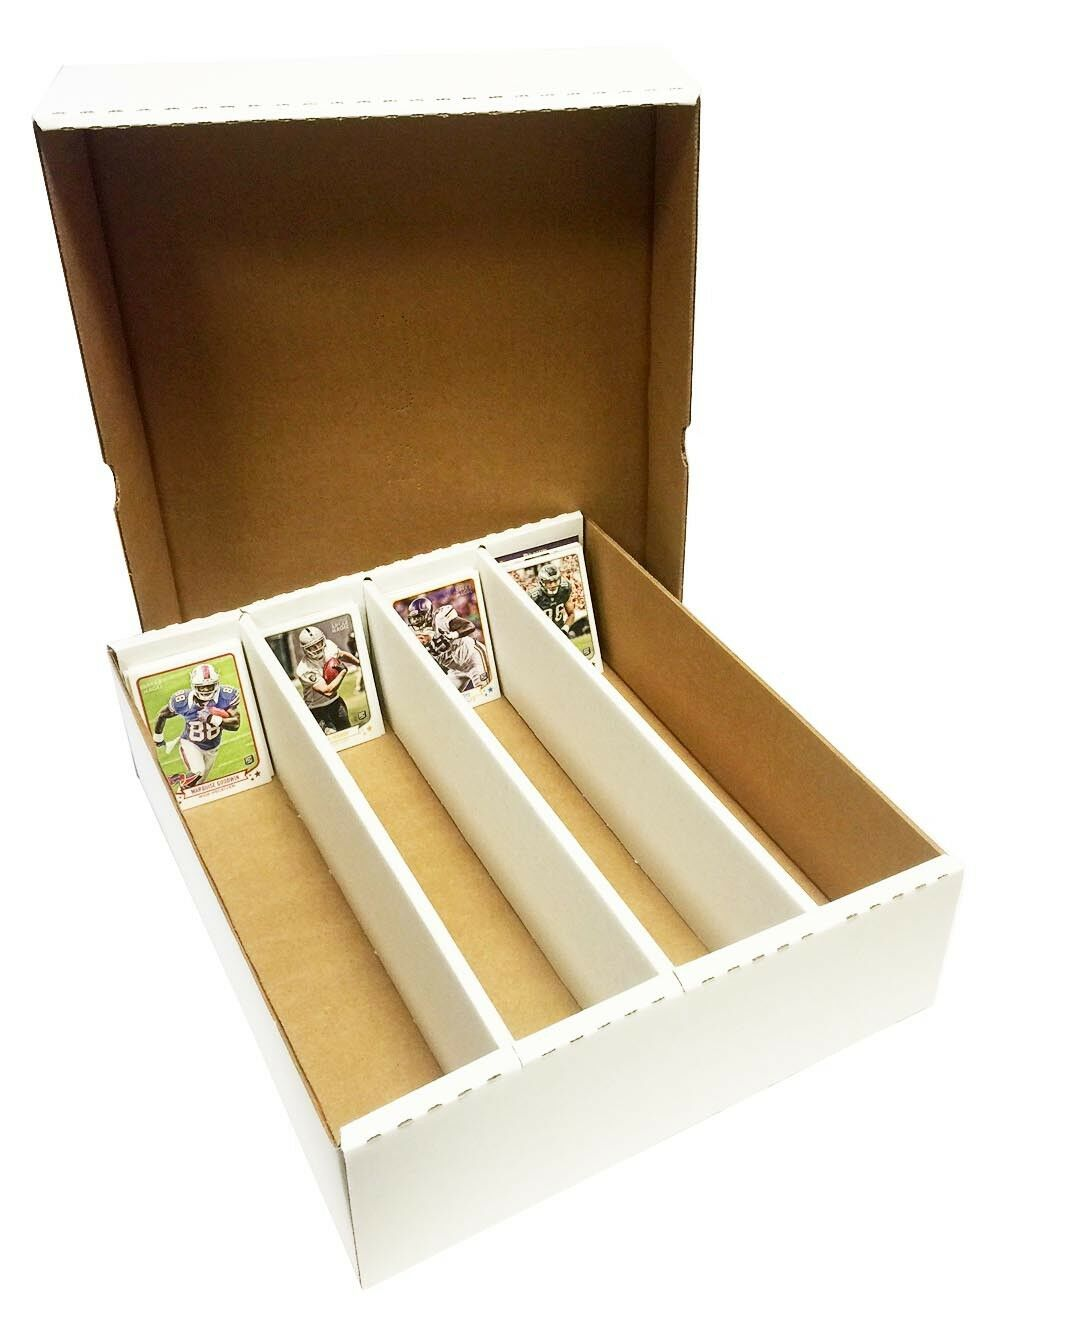 409586d0060 4) CARDBOARD 3200 CT. MAX PRO MONSTER SHOEBOX 4 ROW STORAGE TRADING ...